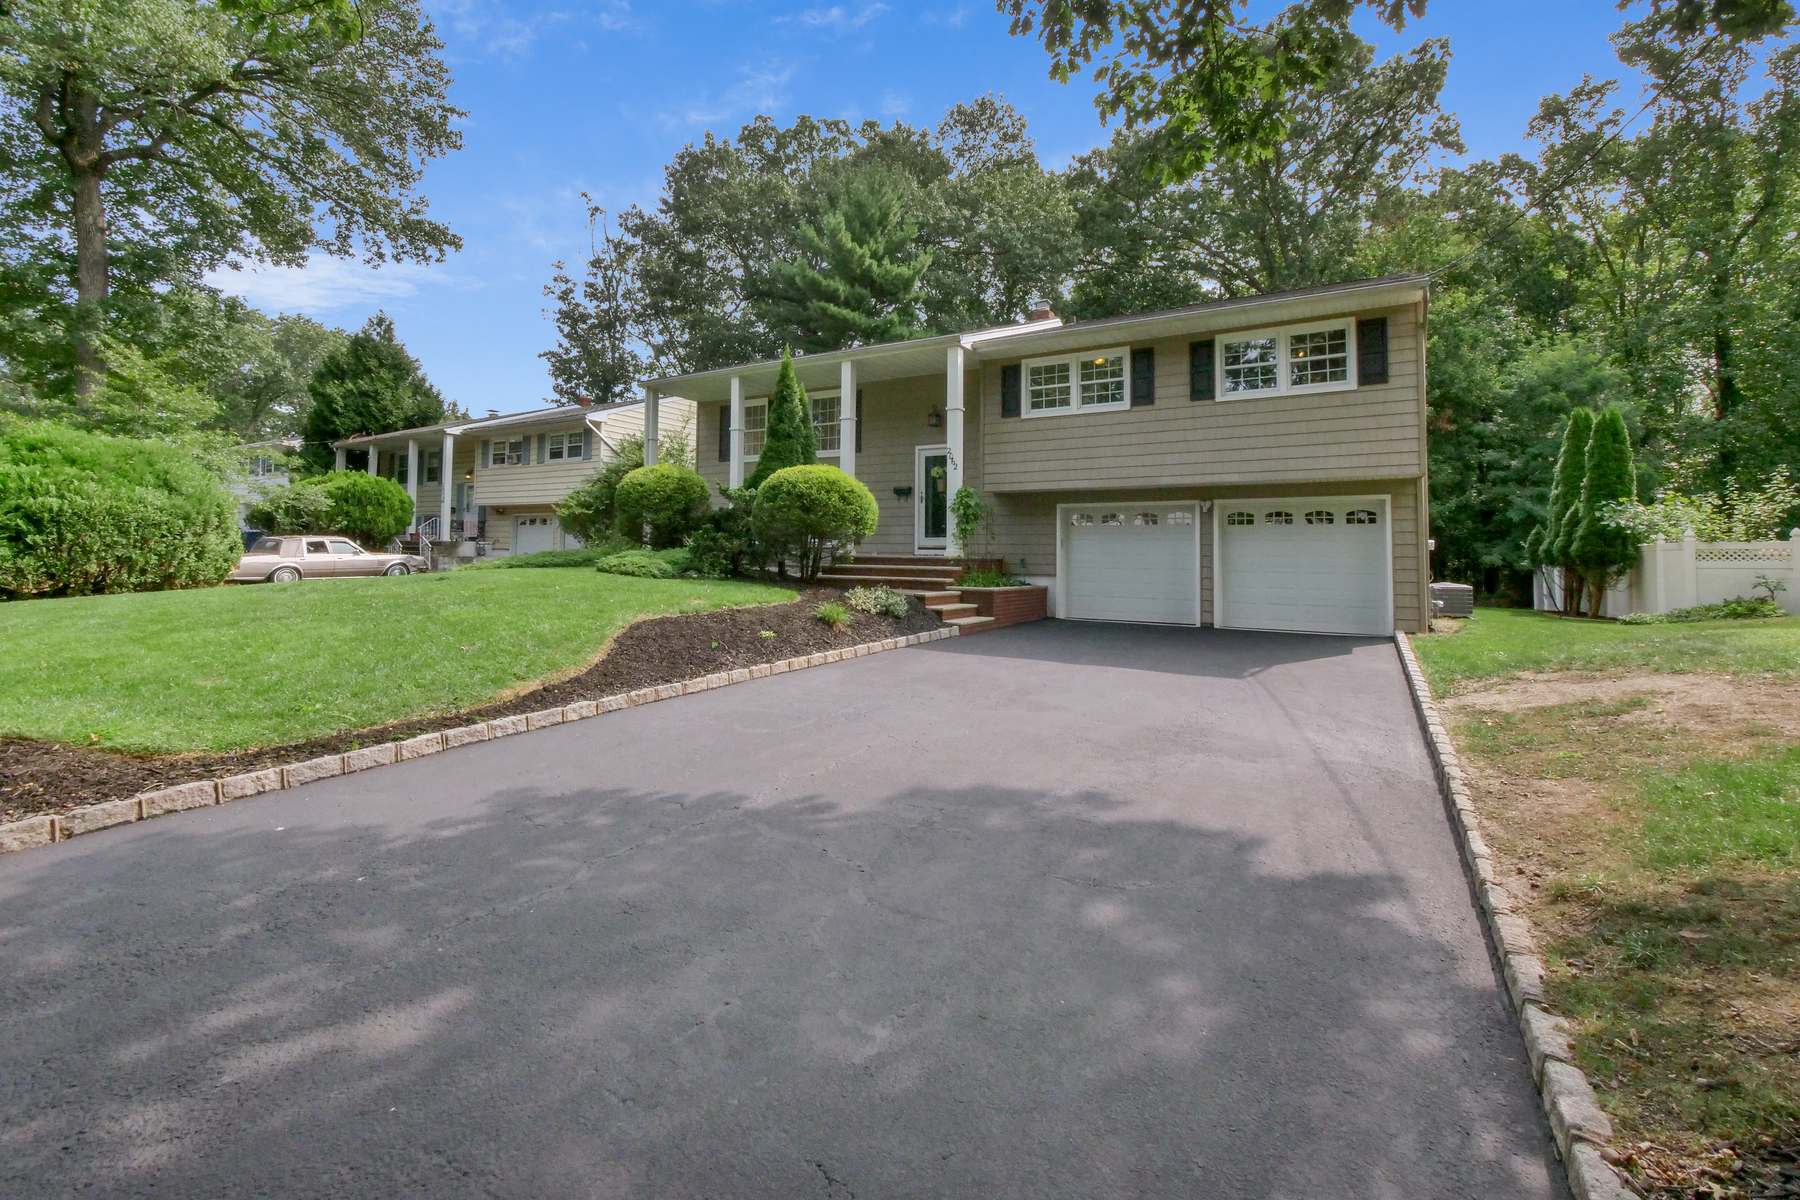 Single Family Homes for Sale at Cul De Sac Location in Desirable Maple Hill 2062 Princeton Avenue, Fanwood, New Jersey 07023 United States